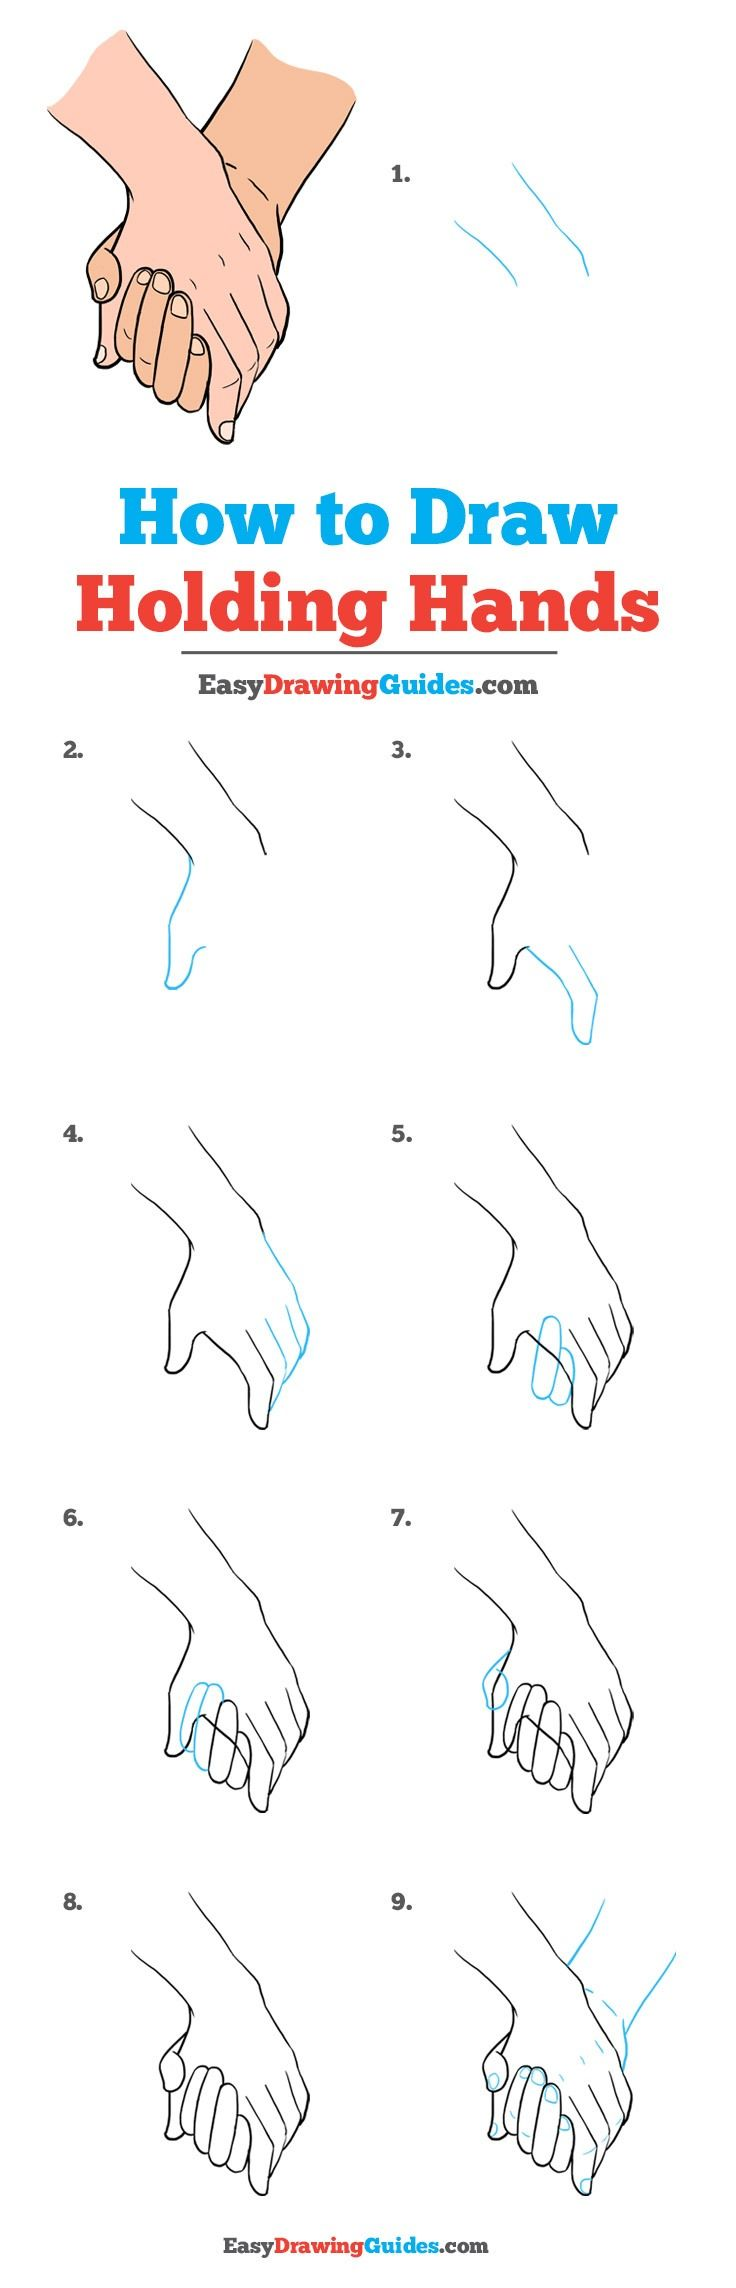 Learn How to Draw Holding Hands: Easy Step-by-Step Drawing Tutorial for Kids and Beginners. #Holding Hands #DrawingTutorial #EasyDrawing See the full tutorial at https://easydrawingguides.com/how-to-draw-holding-hands/.